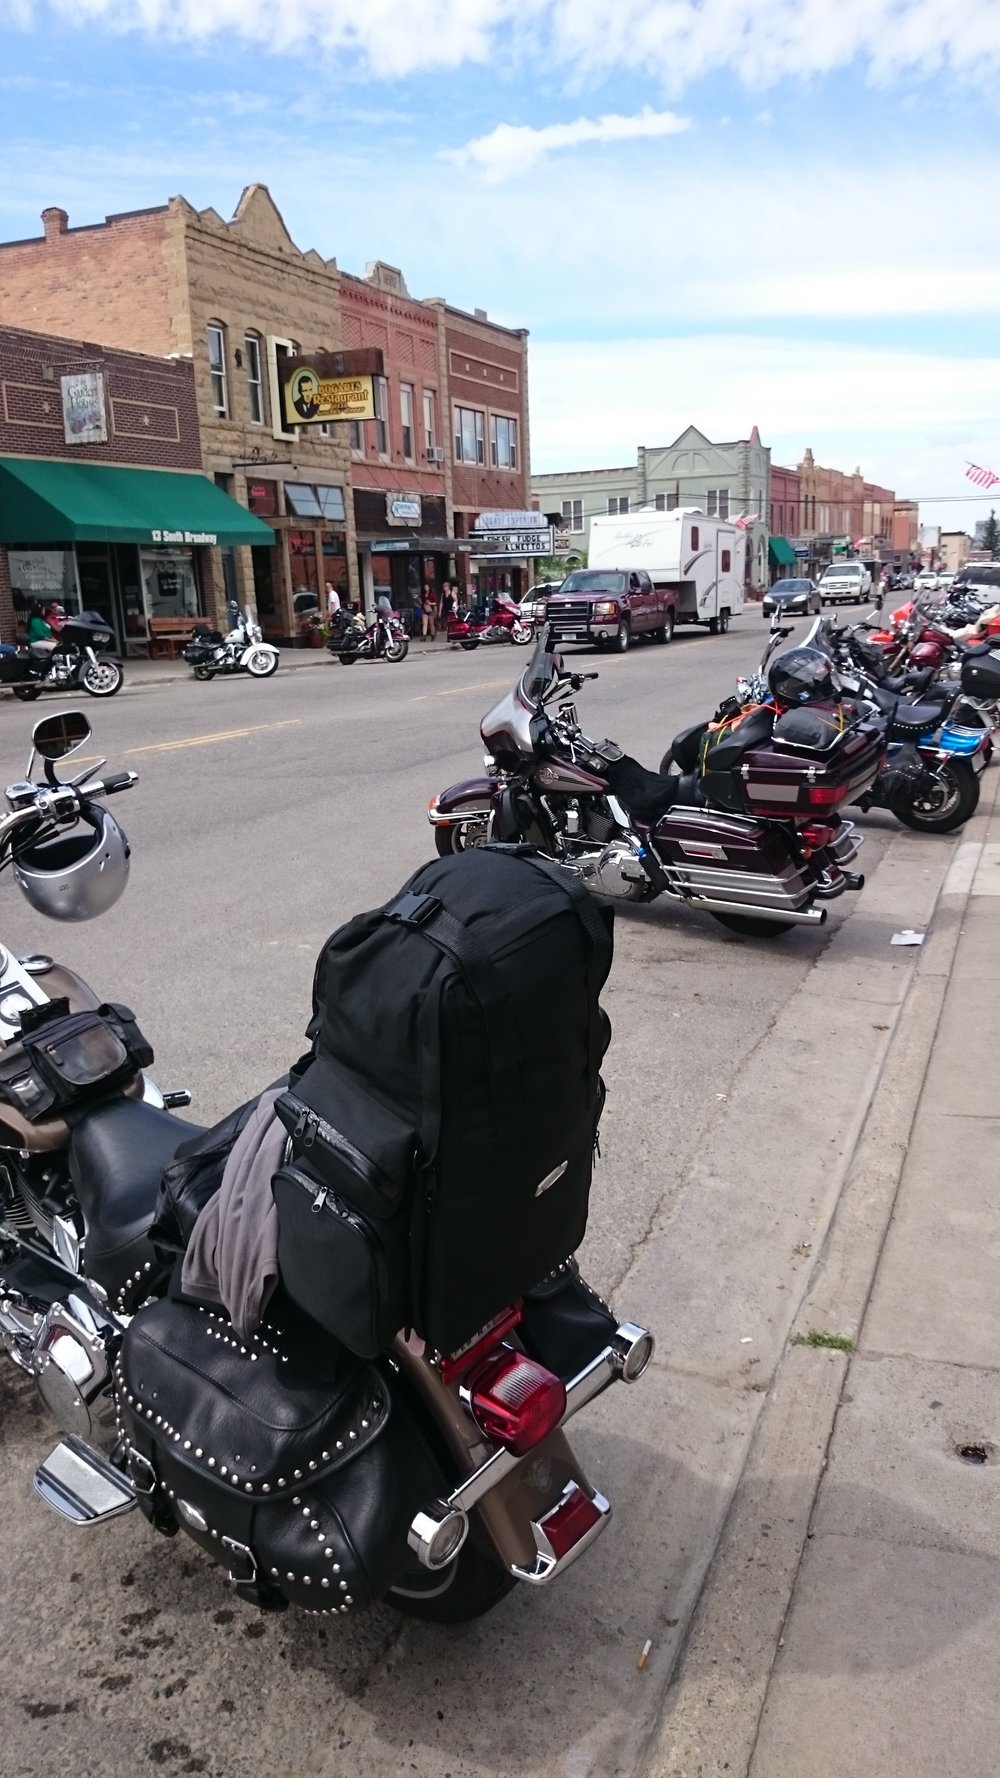 Things to expect - Main street of downtown is filled with nothing but a long line of parked bikes for some great spectating. Have a car? Good luck, try finding a side street to park at instead. This weekend is all about the bikes. Harleys, tricycles, custom paint jobs, shining chrome, classic bikes and the weird fill downtown. Showing off your own ride and comparing bikes with others is good fun and might even get you some new riding buddies. If you are likely staying out late, make sure to get a sober drive home or walk back to your lodging. The Corner Stone is in walking distance! Check to see if we are available.  Shops and vendors will also be found all throughout downtown. Need new leather? No problem, outfitters will have you covered, literally. One might say leather is the official dress code for the Beartooth Rally. Poker runs, live music with dances and even a golf tournament can be things to expect.  The iron horse rodeo itself is a wild time full of fun and crazy motorcycle iron horse competitions. Barrel racing, a slow race and a sausage eating contest are just a few of the possible events at the rodeo. Things are changed up every year to keep things interesting. The only thing you know you will get for sure is a good time. Want to join the Iron Horse Rodeo? Try signing up, or watch from the crowd.